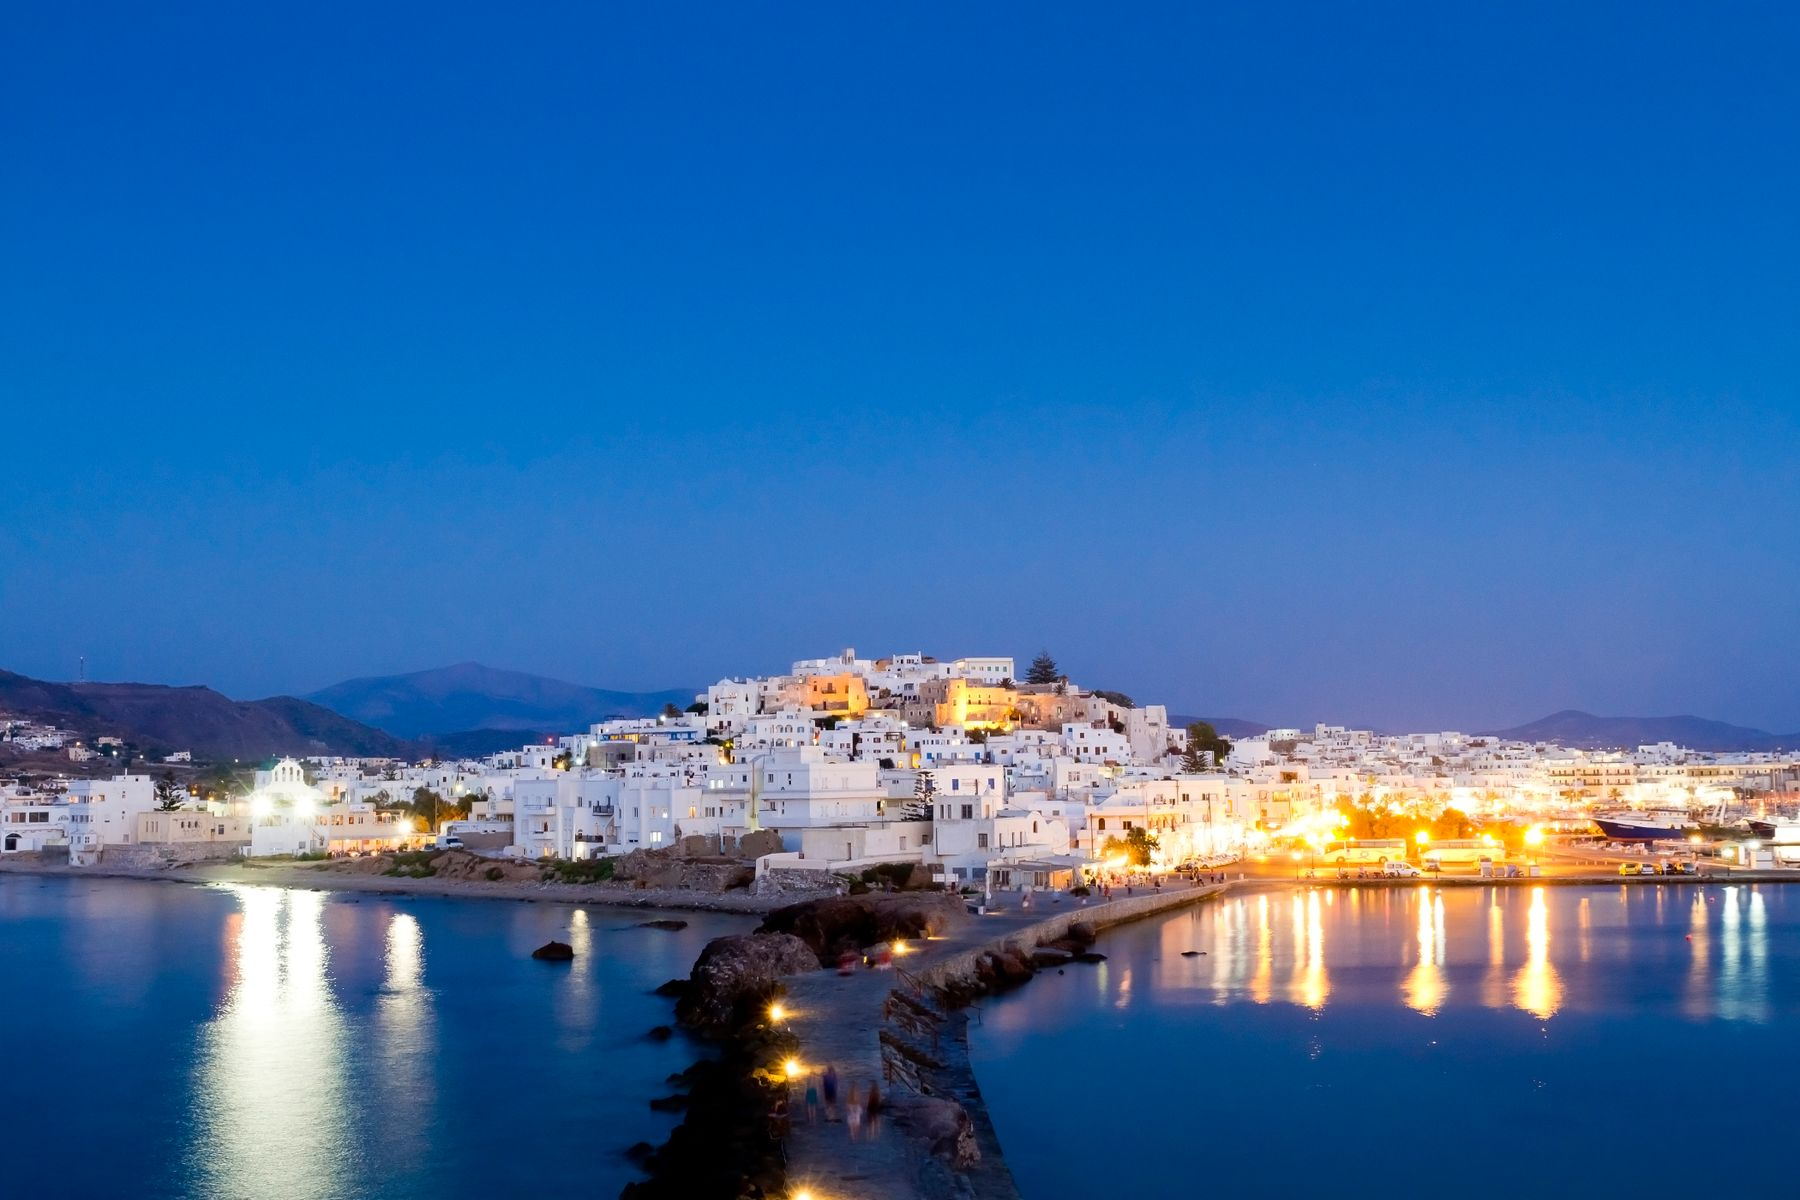 As 20 mais belas ilhas gregas: Naxos